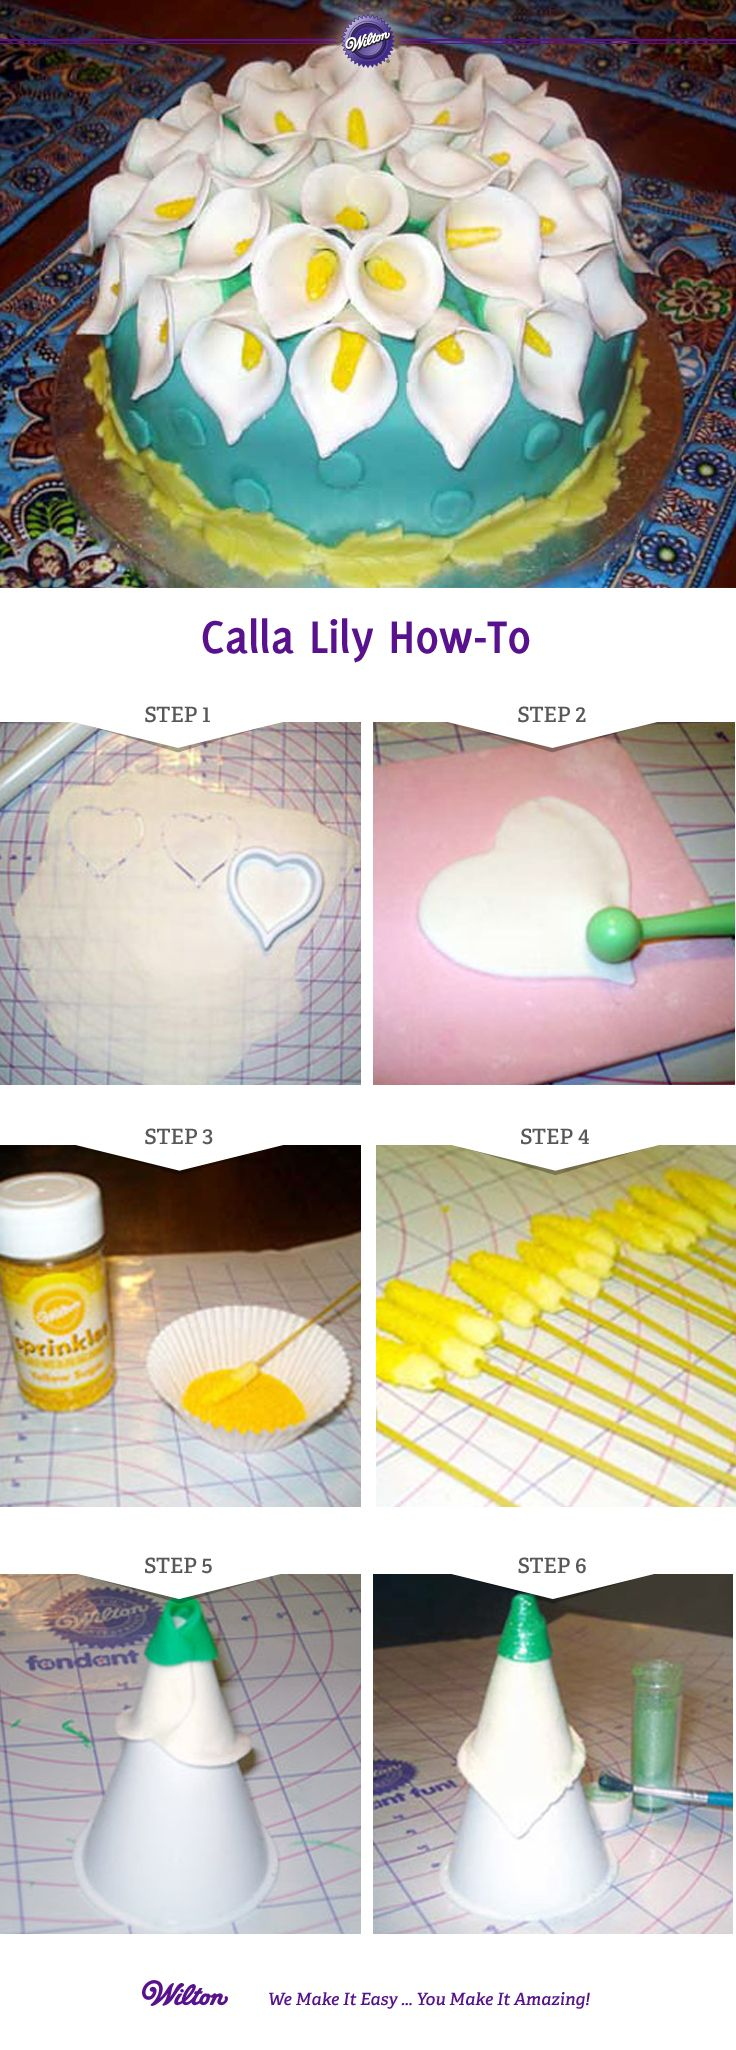 Lily Nail Cake Decorating : Best 25+ Calla lily cake ideas on Pinterest